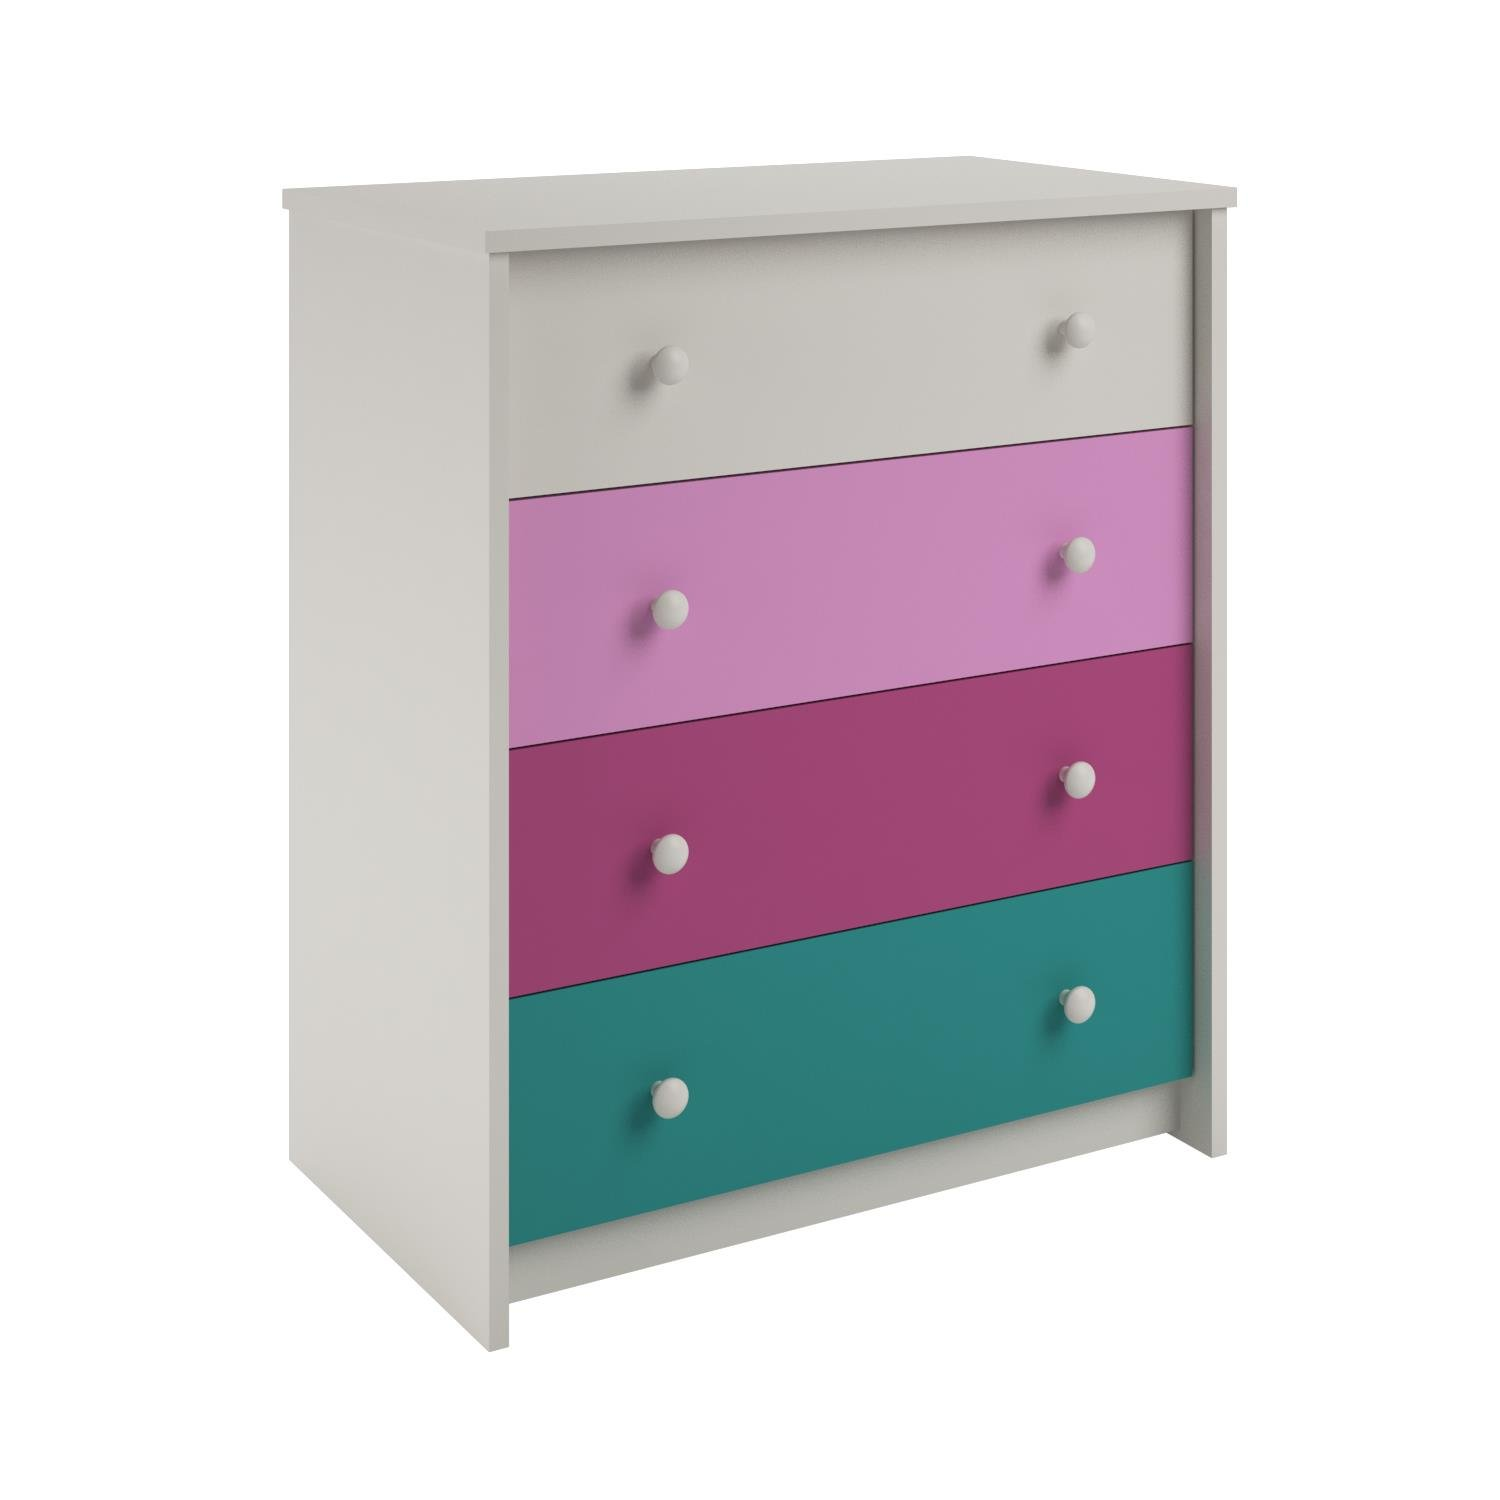 whimsy furniture. amazoncom cosco kids furniture kaleidoscope 4 drawer dresser whimsywhite stipple baby whimsy